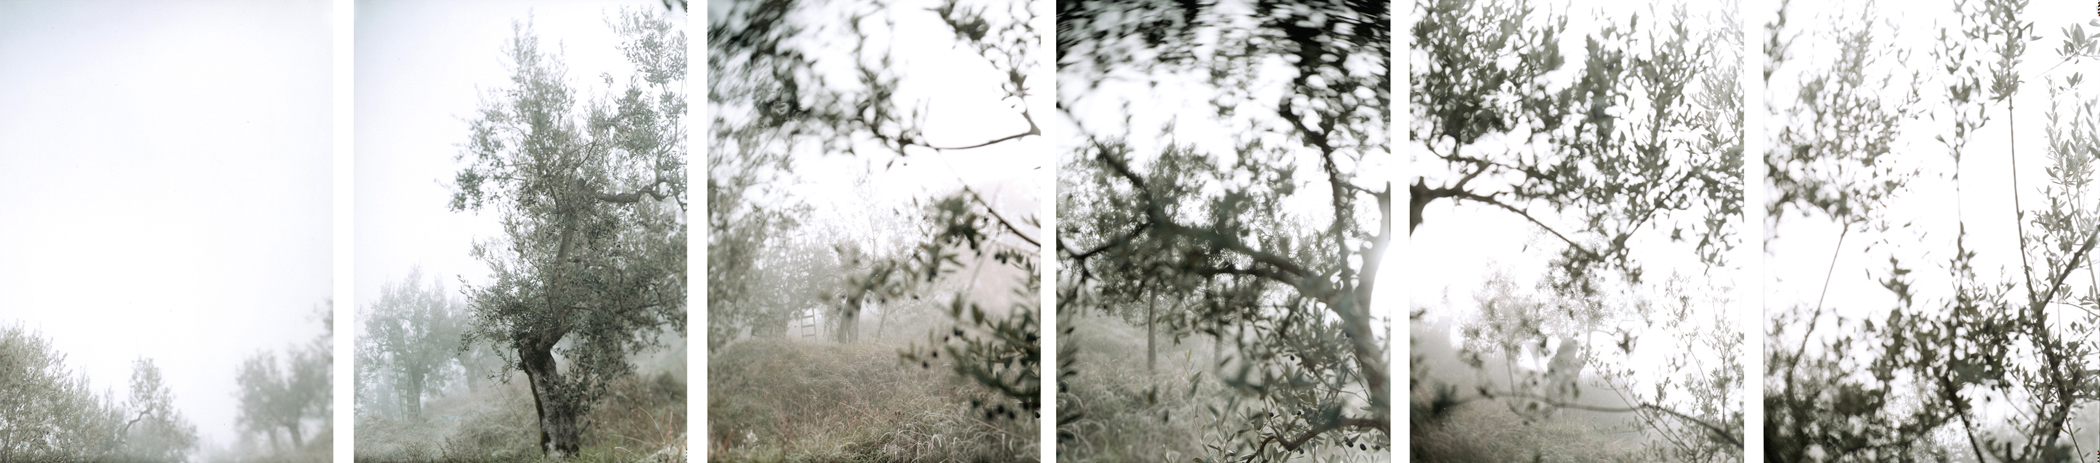 JoAnn Verburg, Thanksgiving, 2001, 10 chromogenic prints, 40 inches x 15 feet, edition of 10, price on request